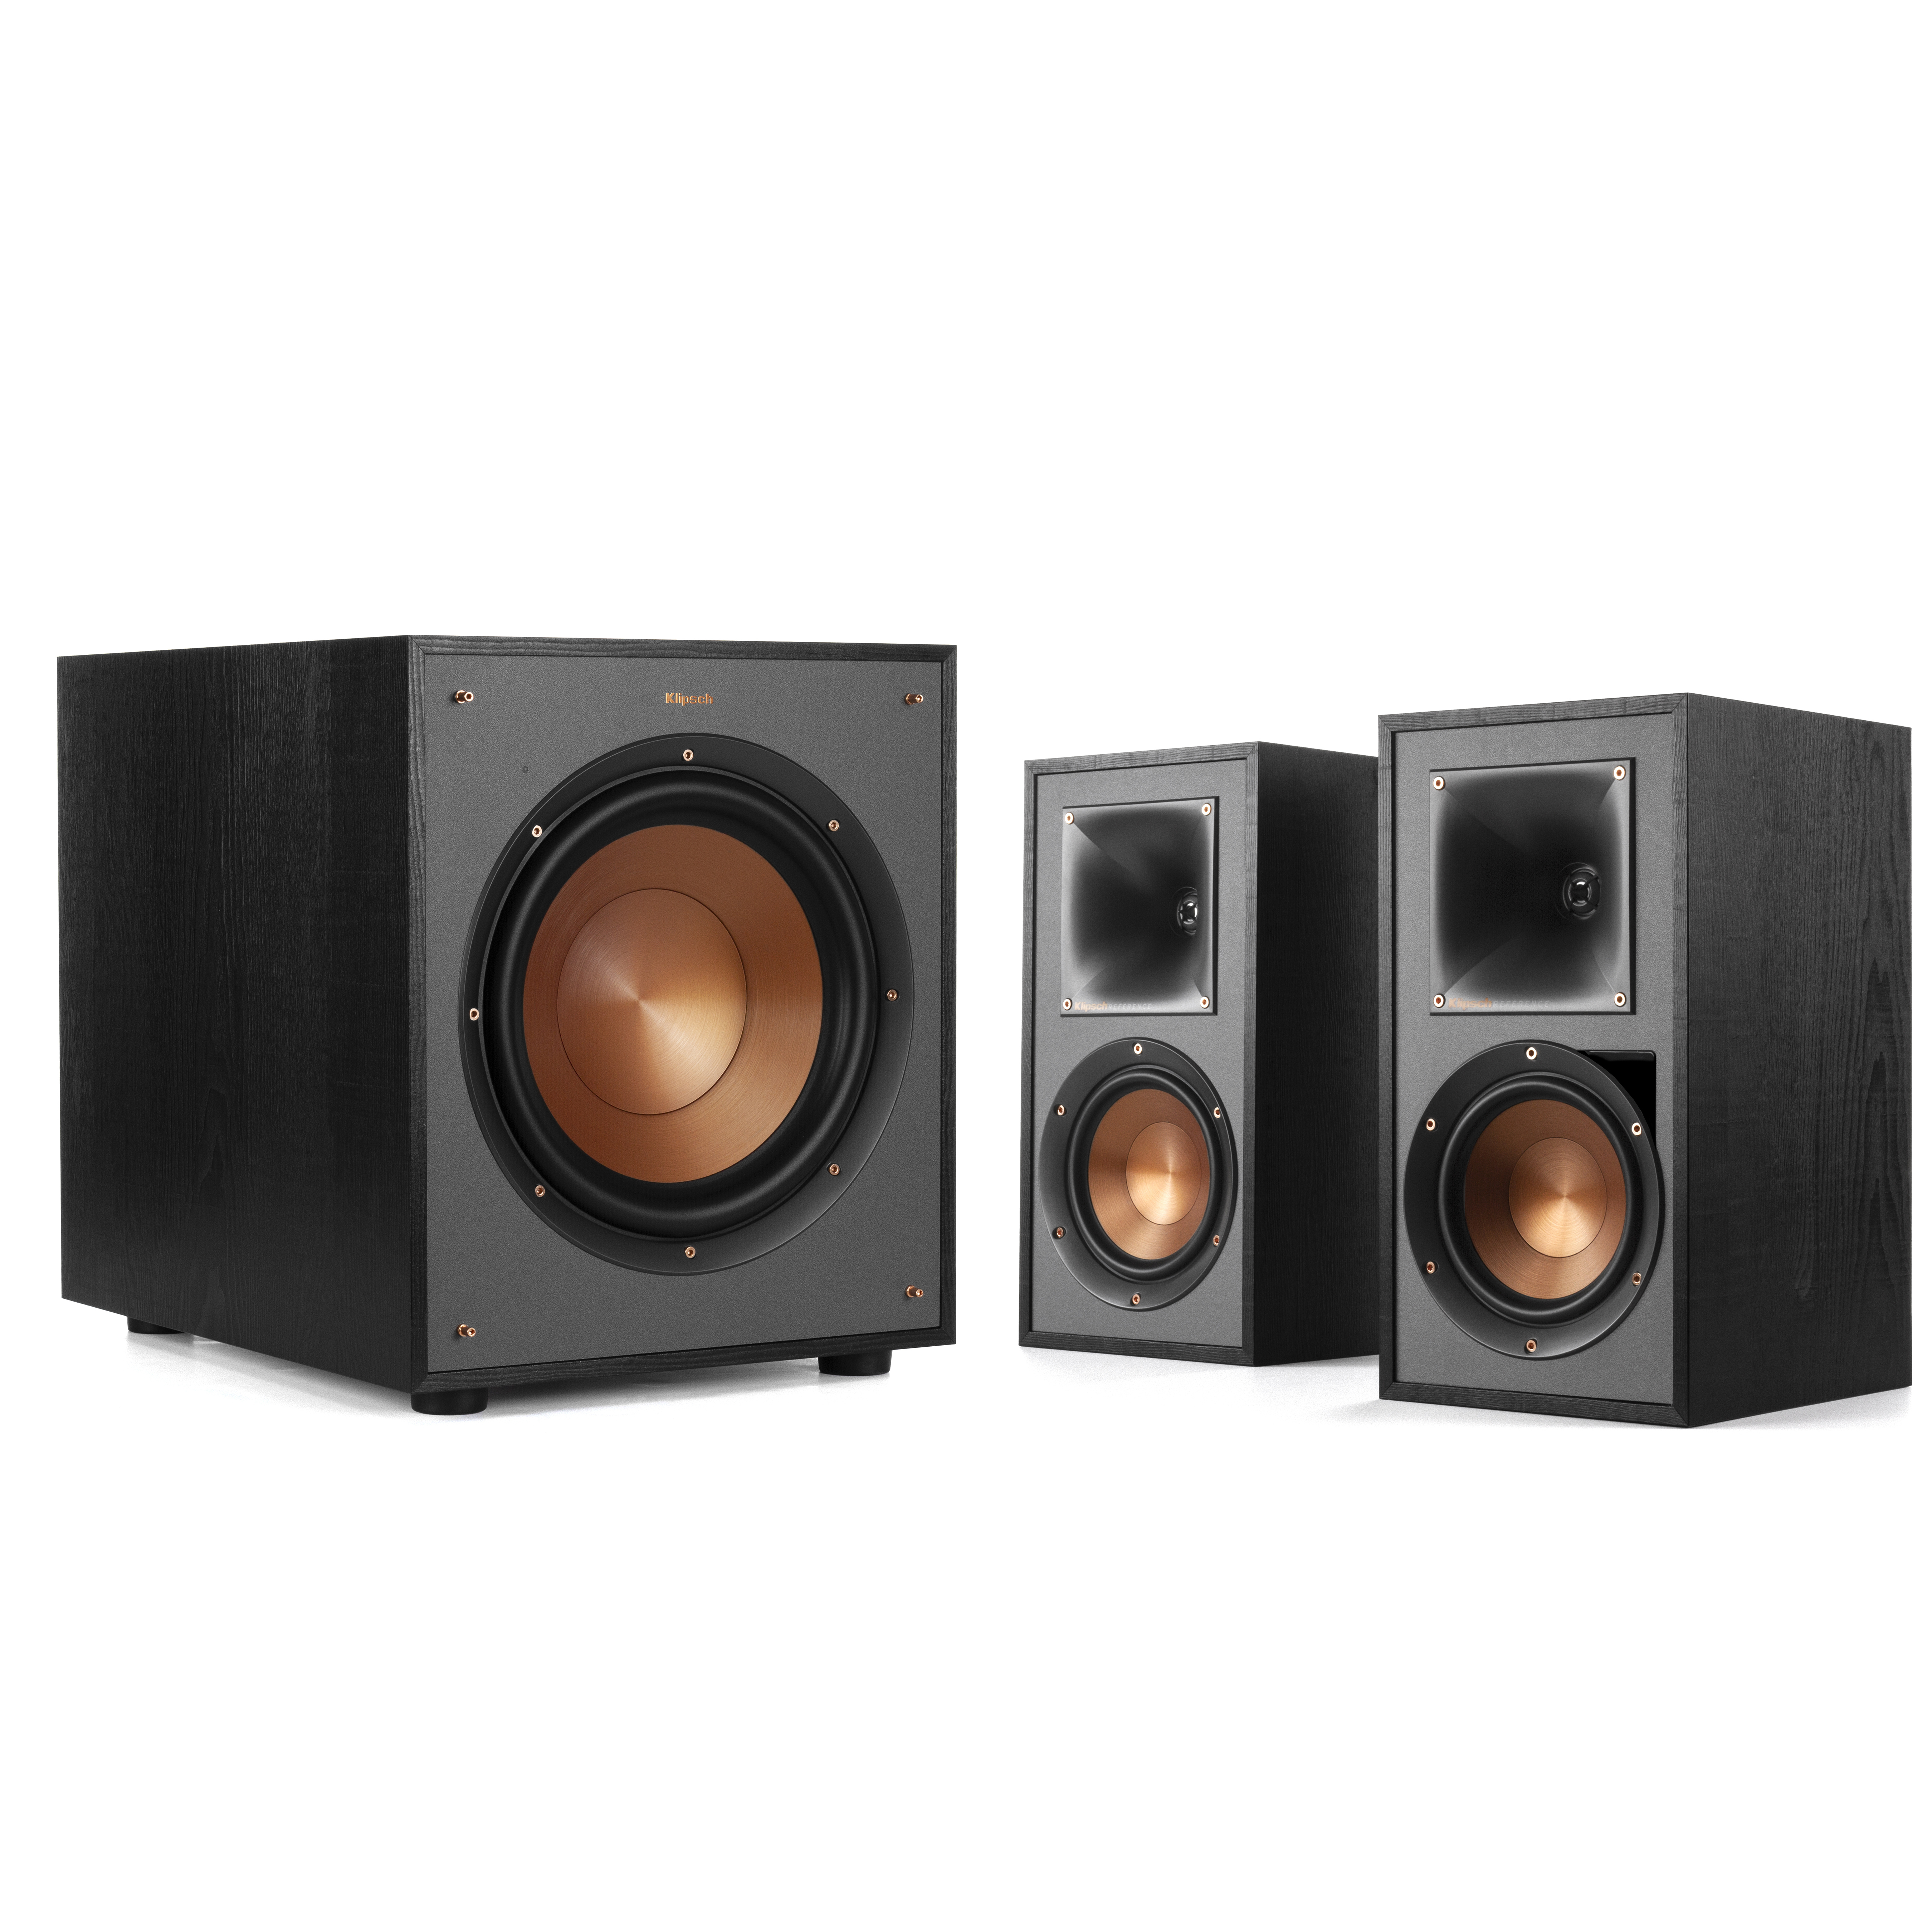 R-51PM + R-100SW 2.1 Speaker Package | Klipsch